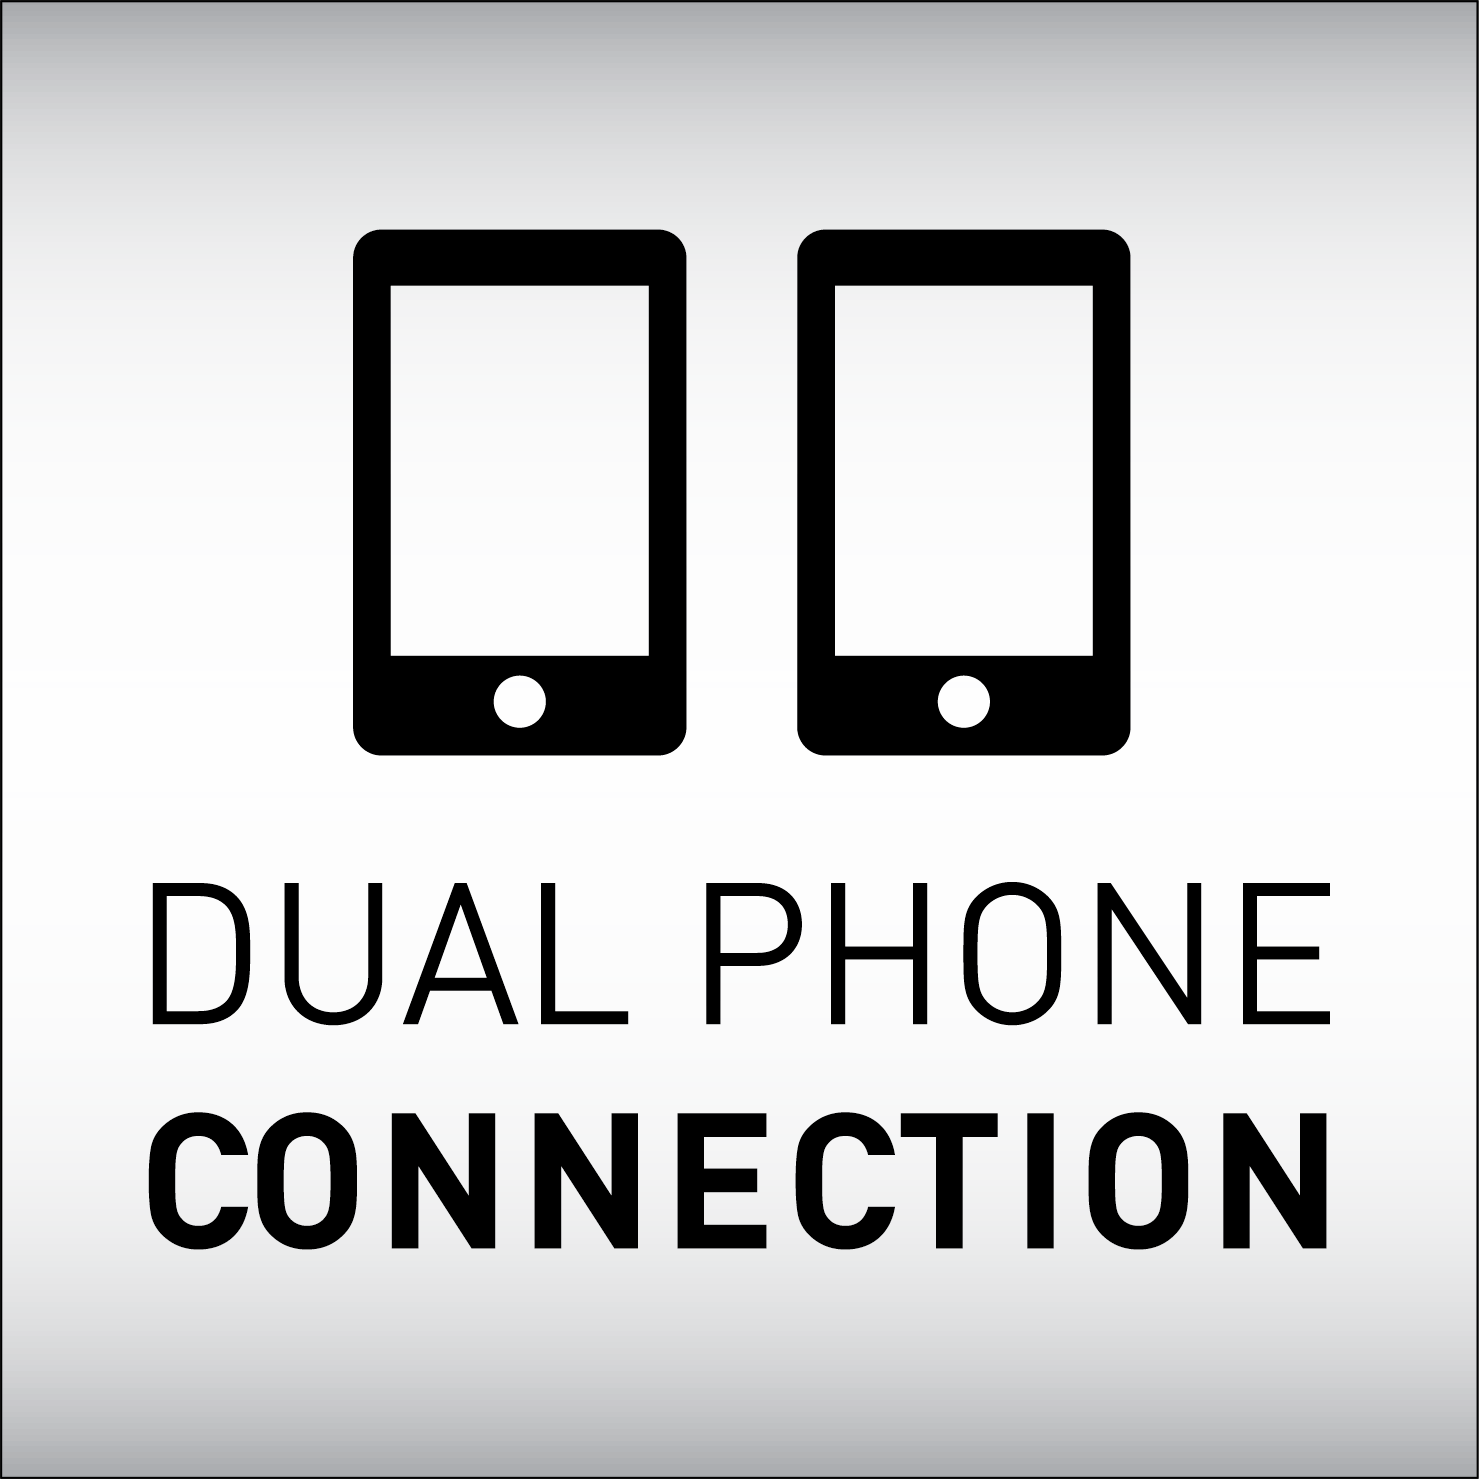 Dual Phone Connection